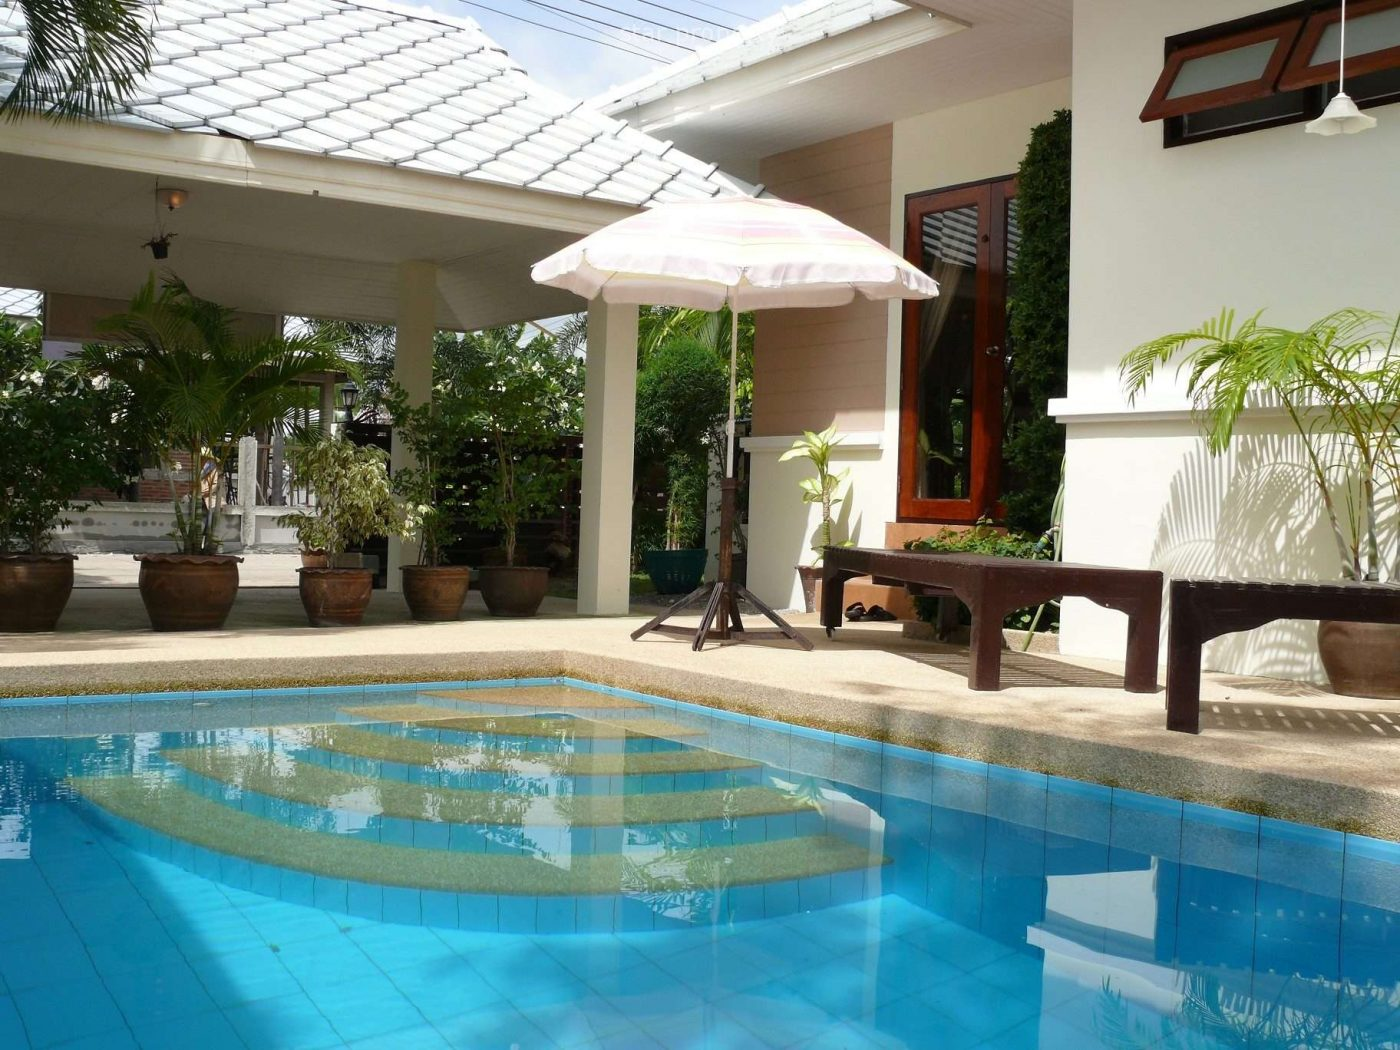 3 Bedroom Pool Villa at Plumeria Villa in Hua Hin Soi 6 at Hua Hin District, Prachuap Khiri Khan, Thailand